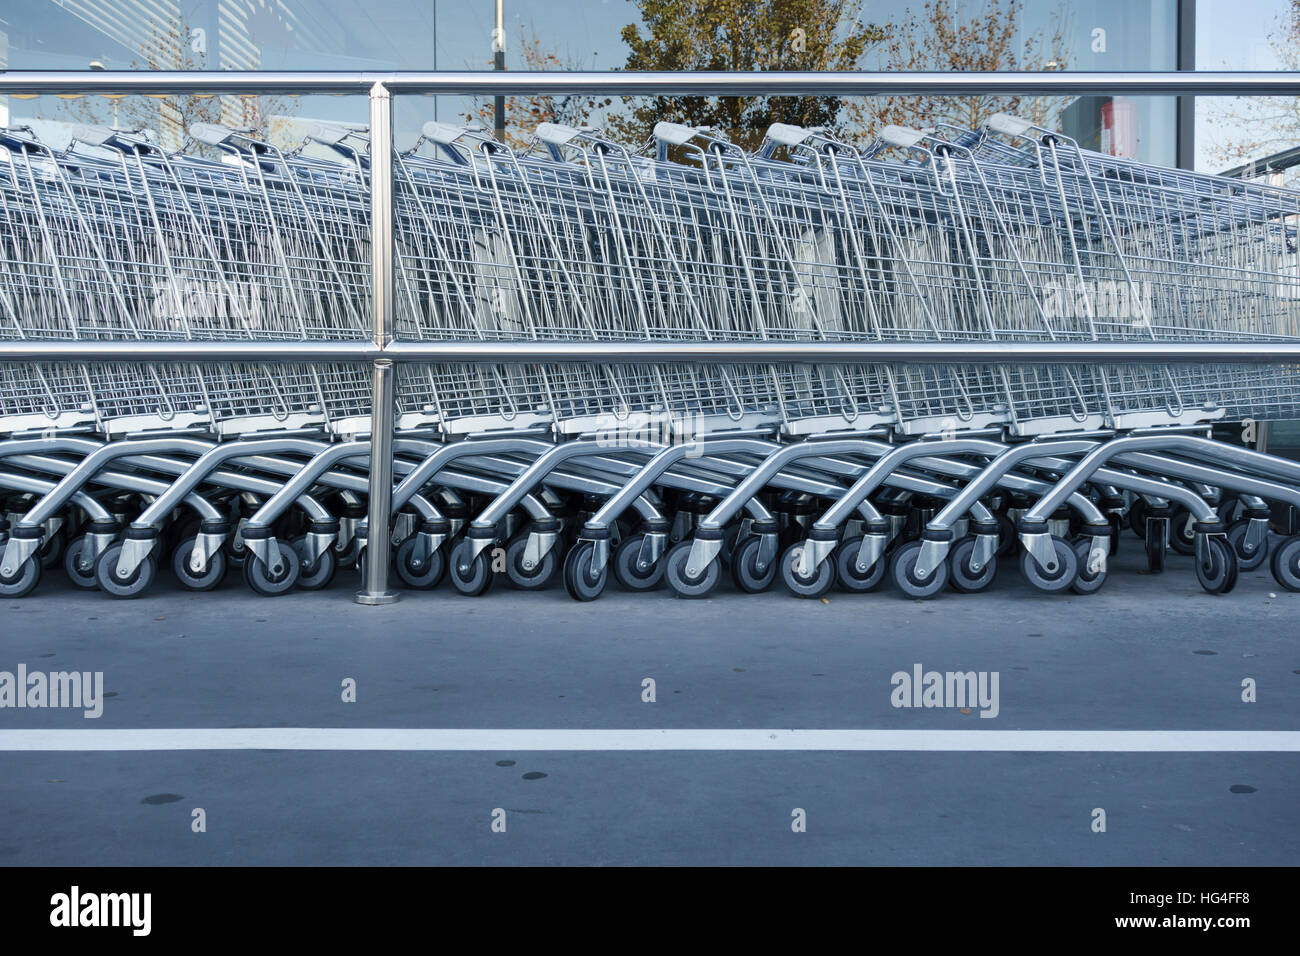 Supermarket carts in a row, in a shopping mall - Stock Image